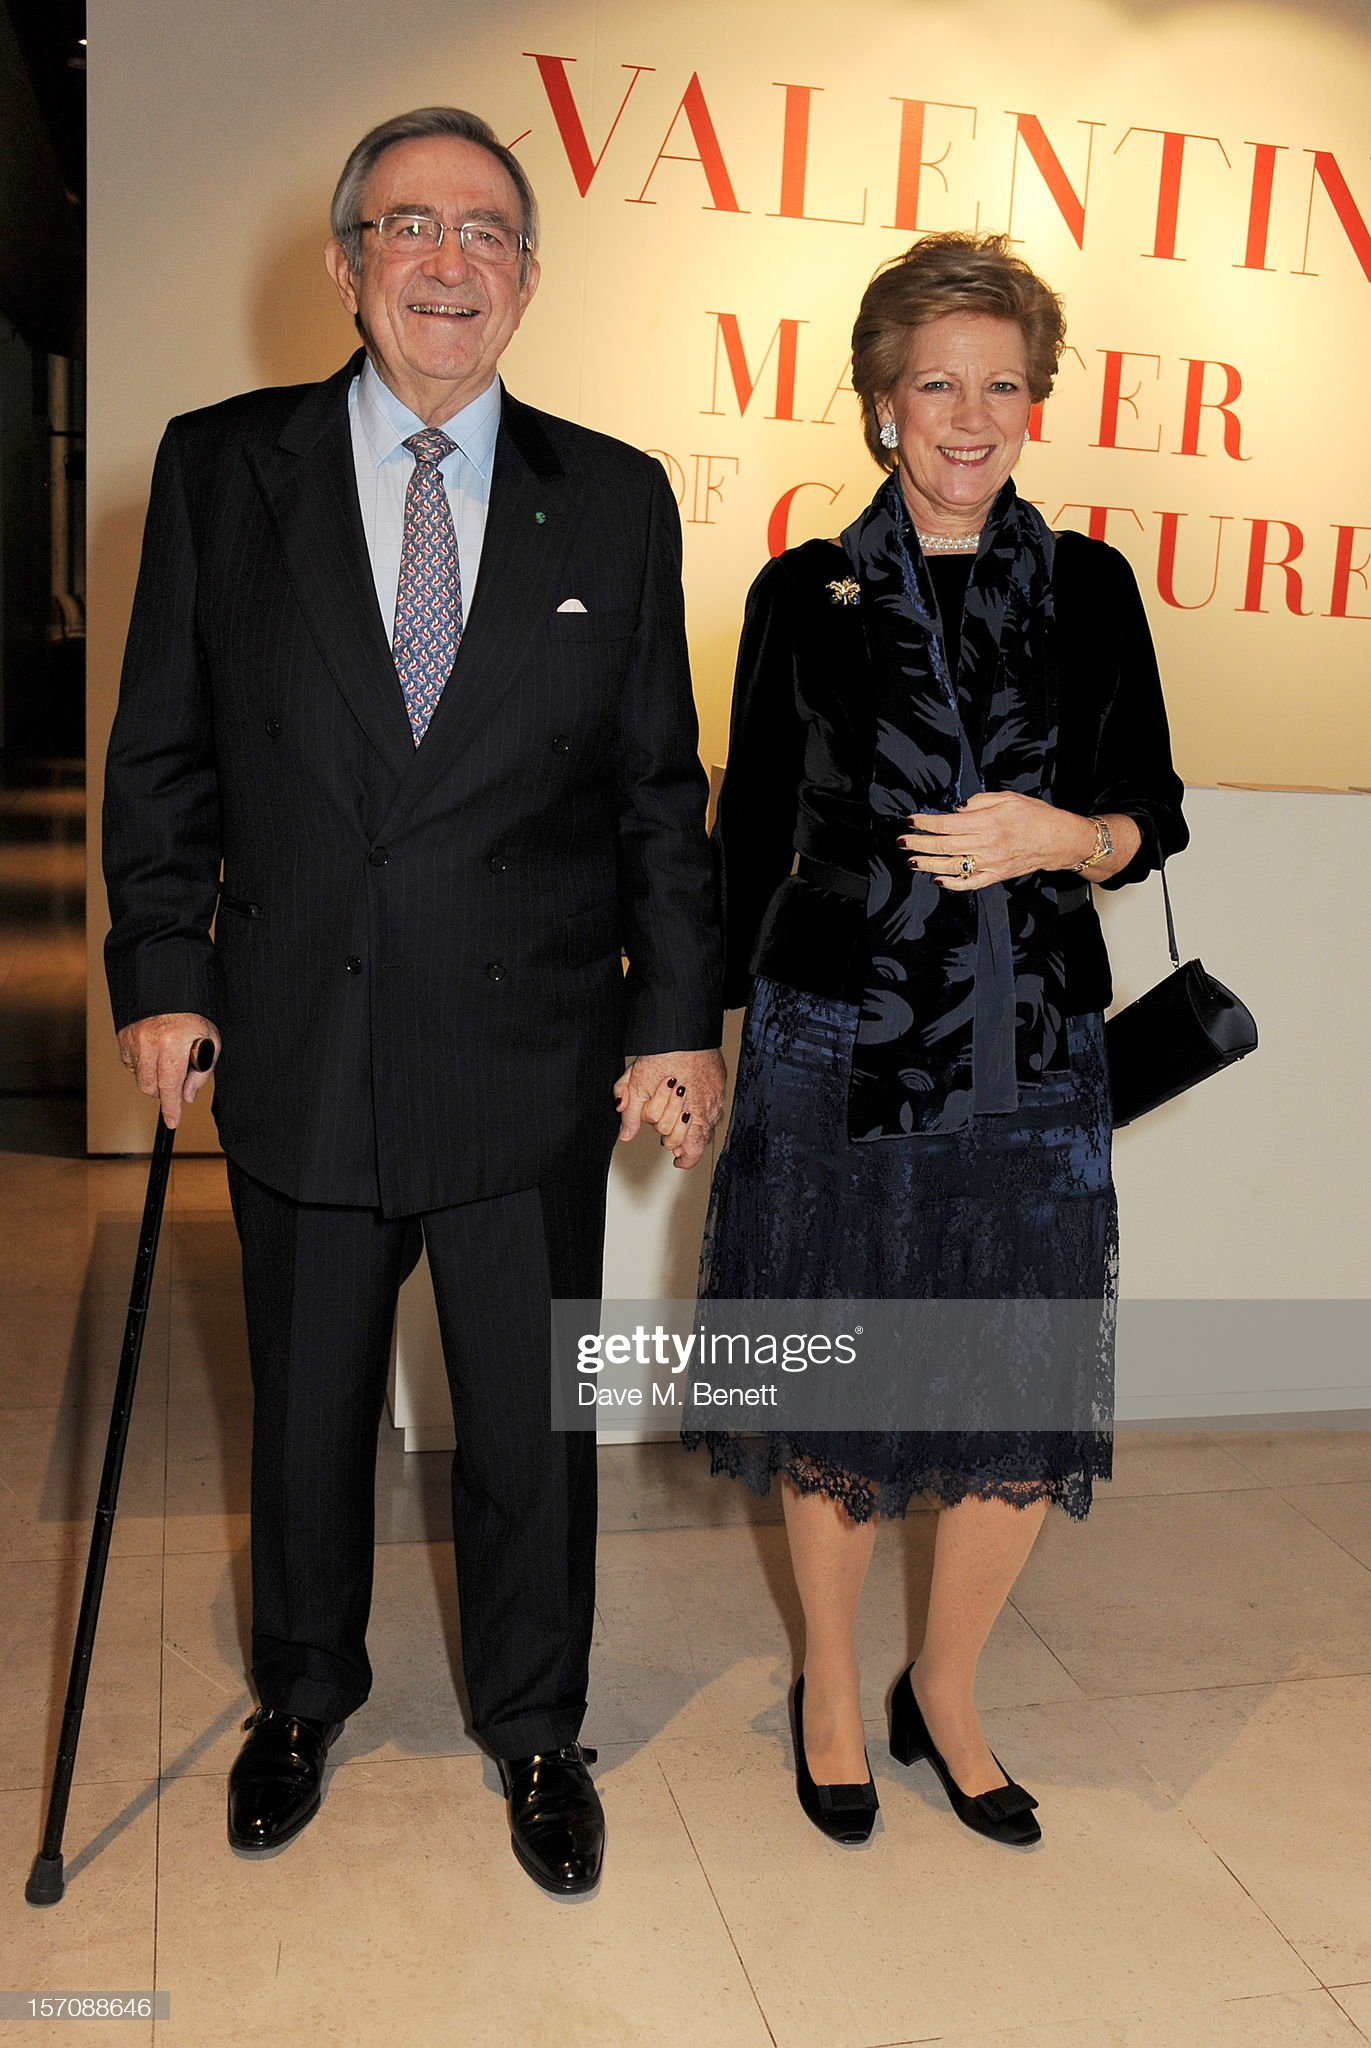 Valentino: Master Of Couture - Private View At Somerset House : News Photo